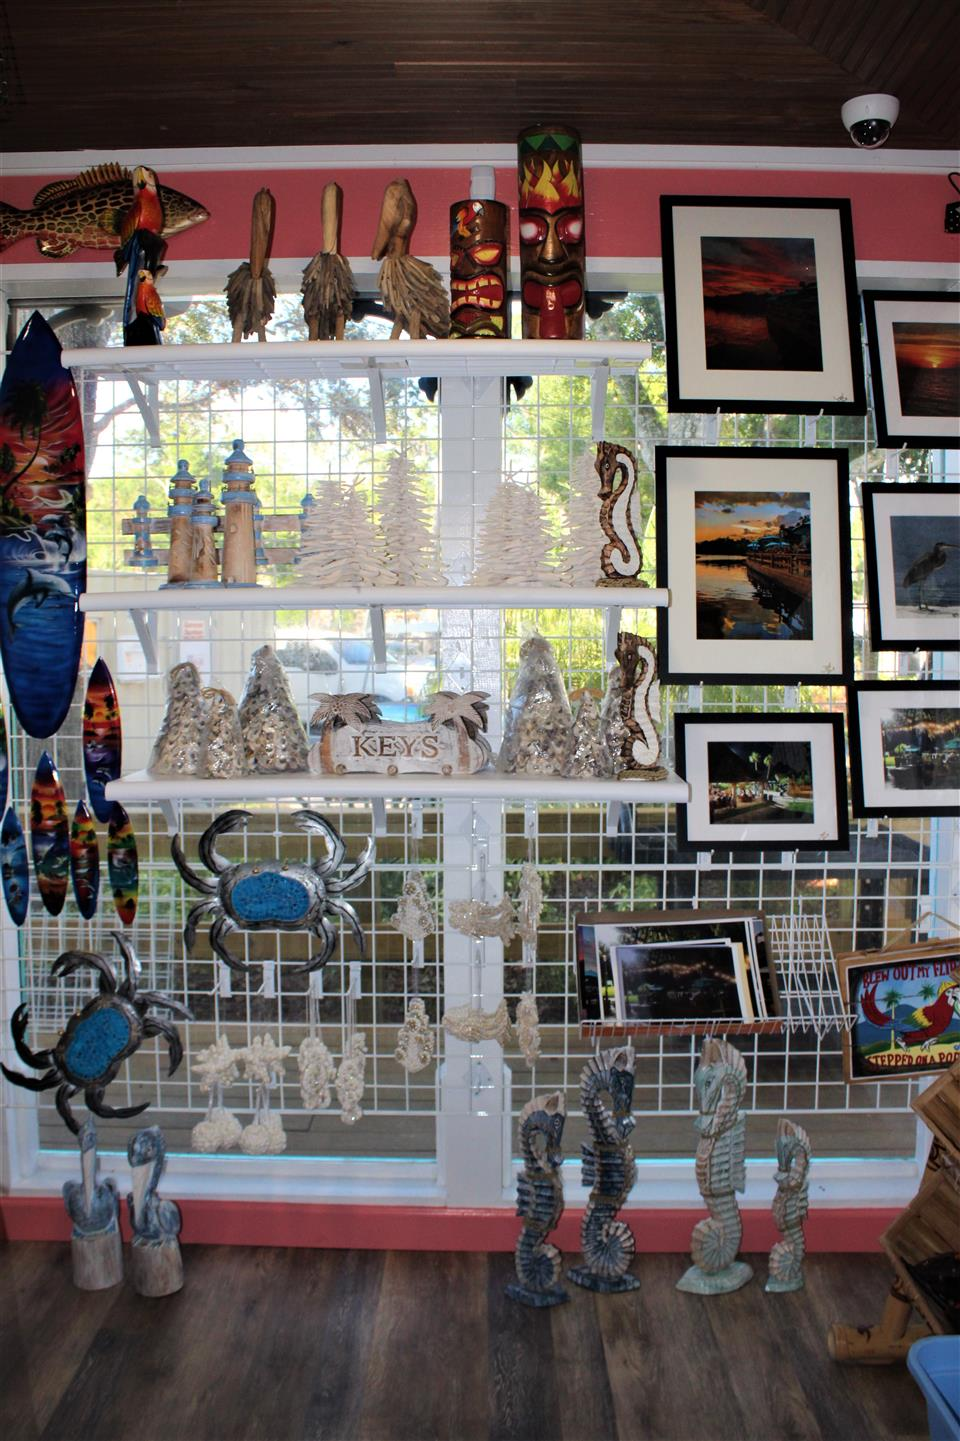 a gift shop that has pictures, tikis, surfboard, crab, seahorse, lighthouse, and palm tree wall decor